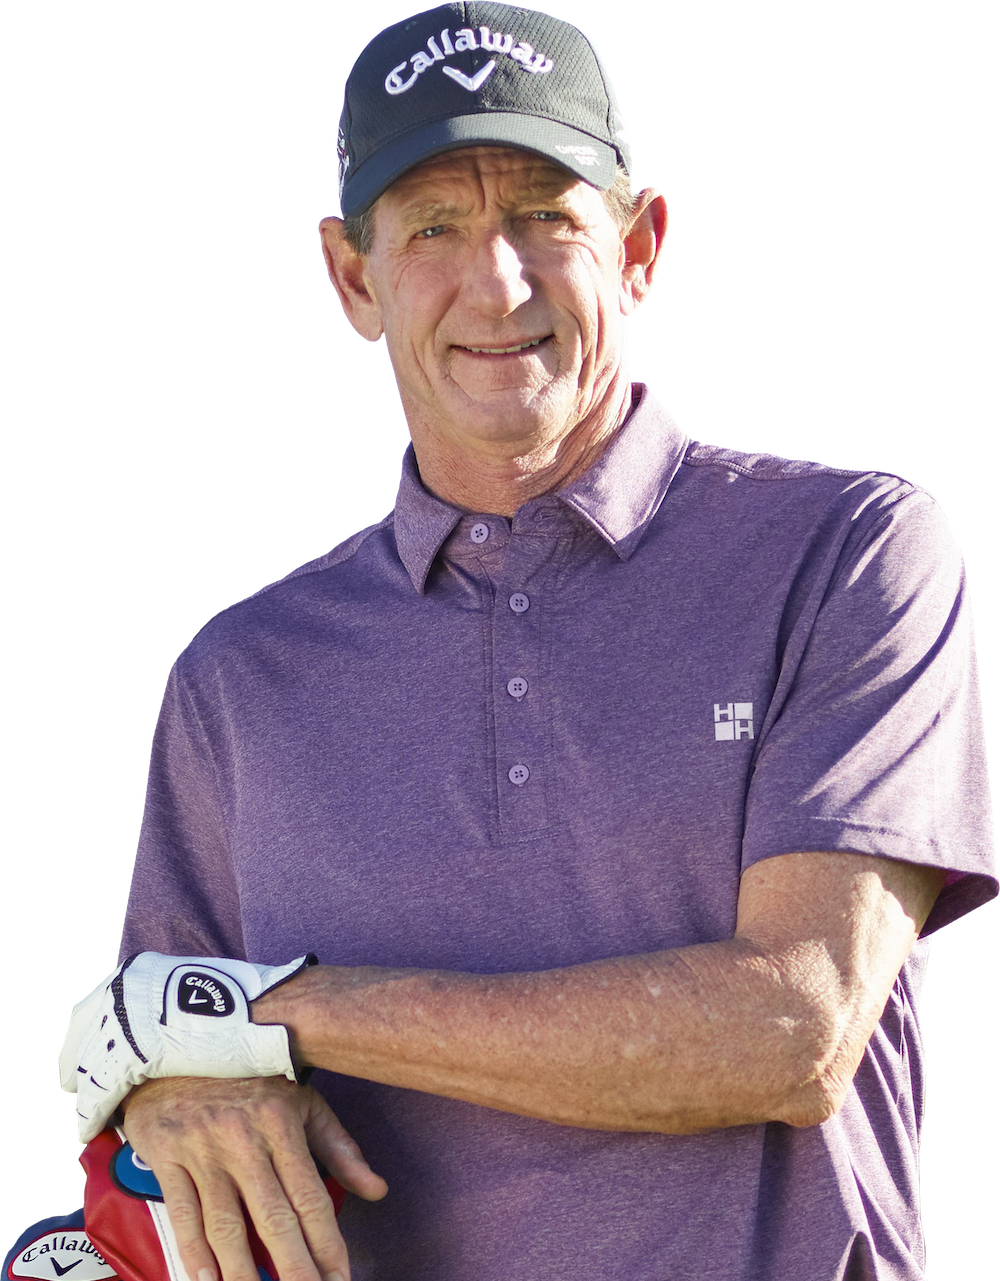 Why Hank Haney?